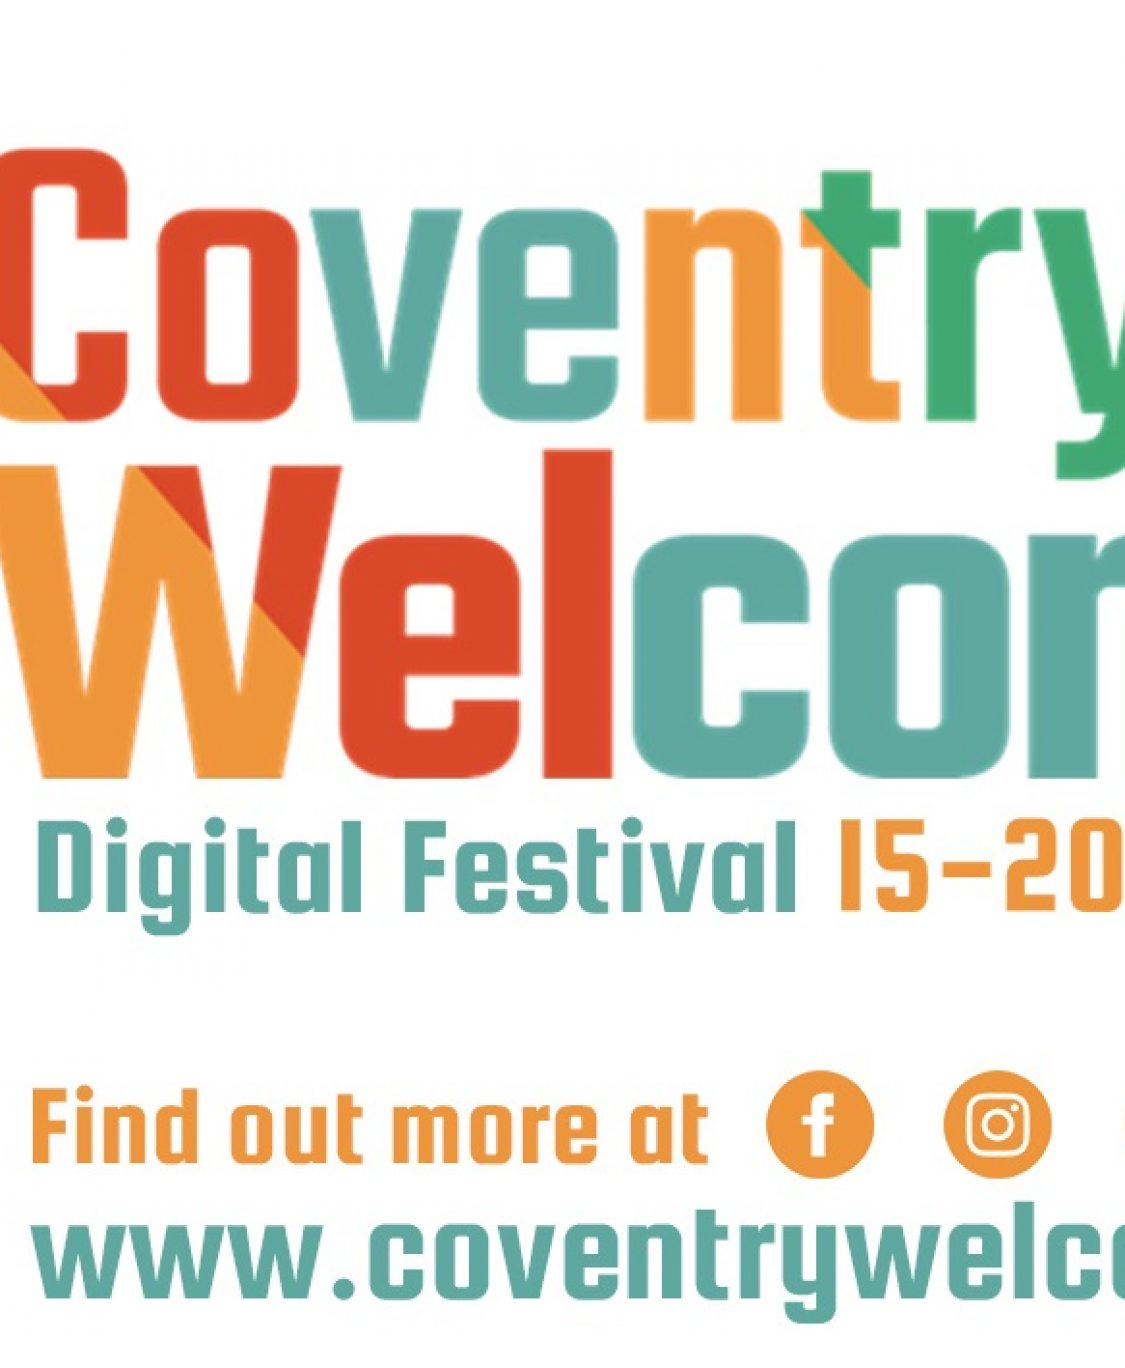 Celebrating Coventry Welcomes Week 2020